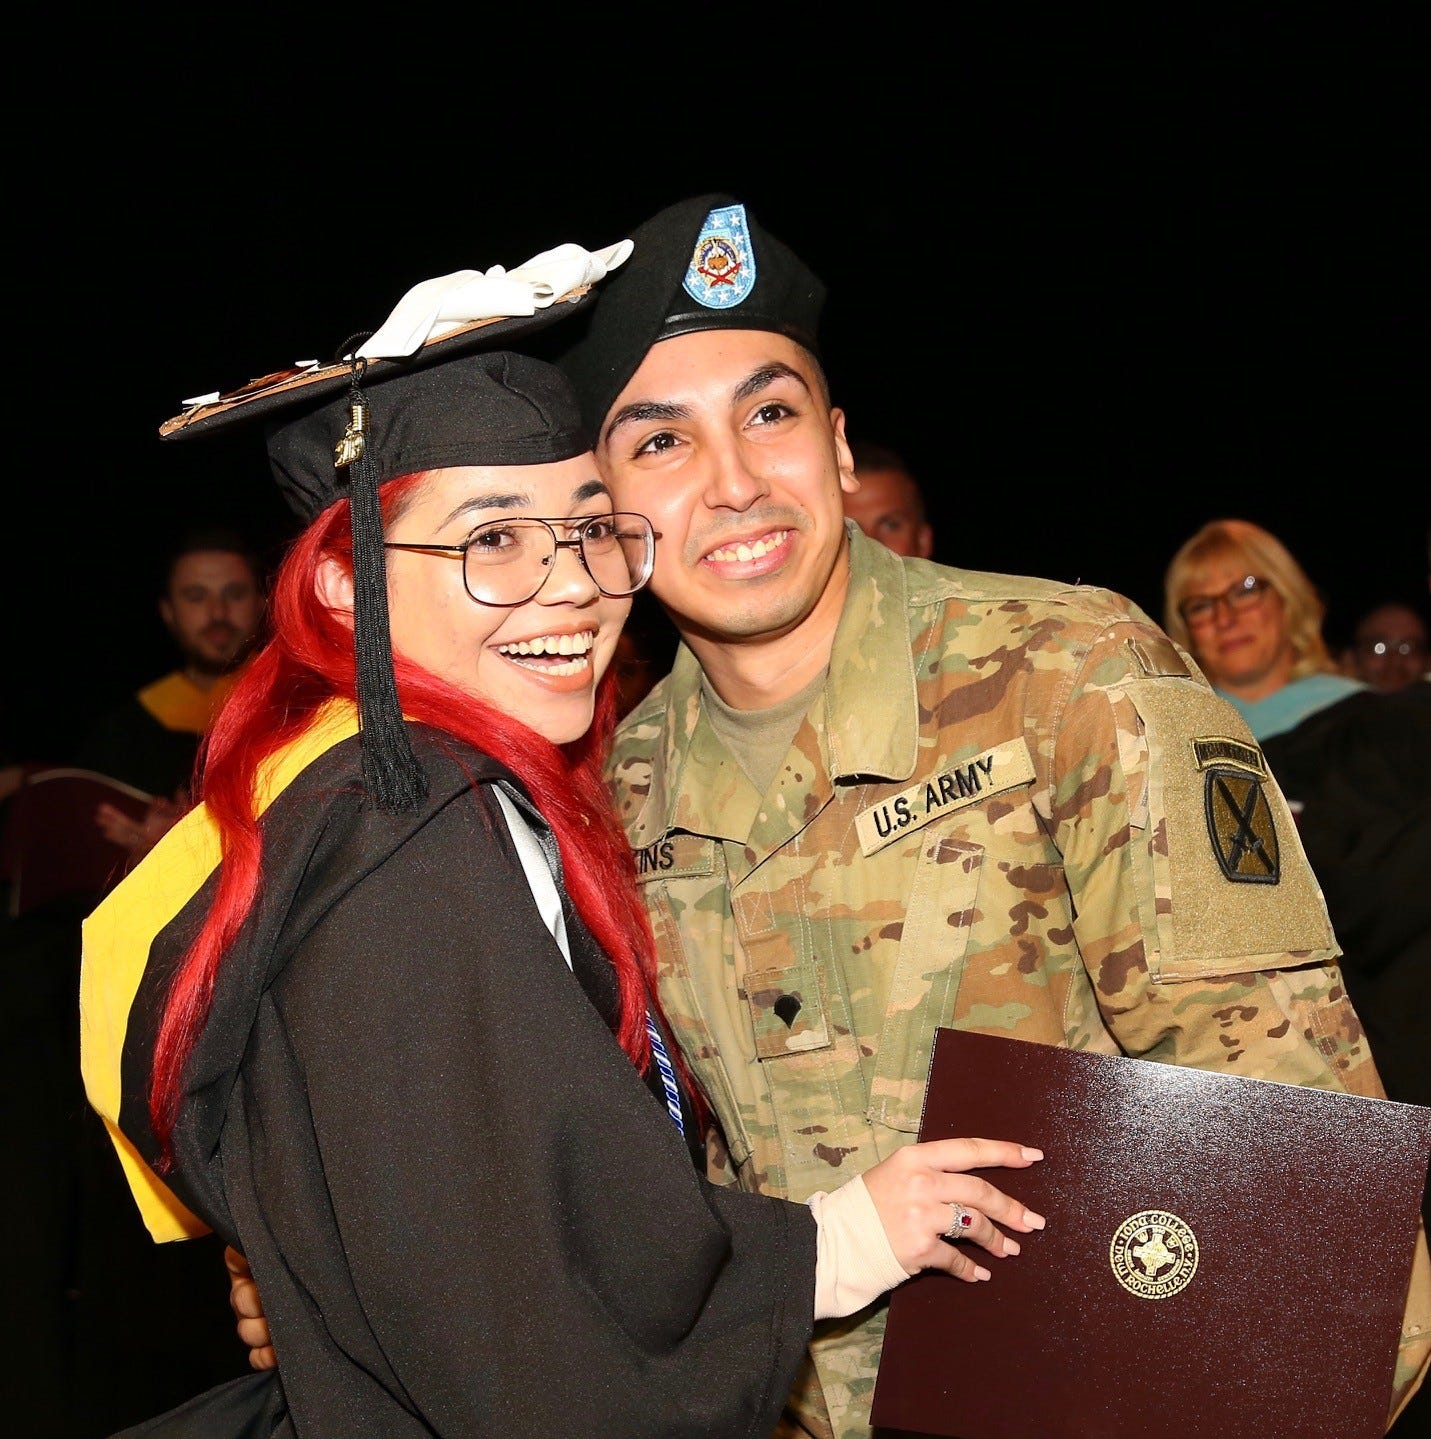 U.S. Army specialist surprises wife at Iona graduation